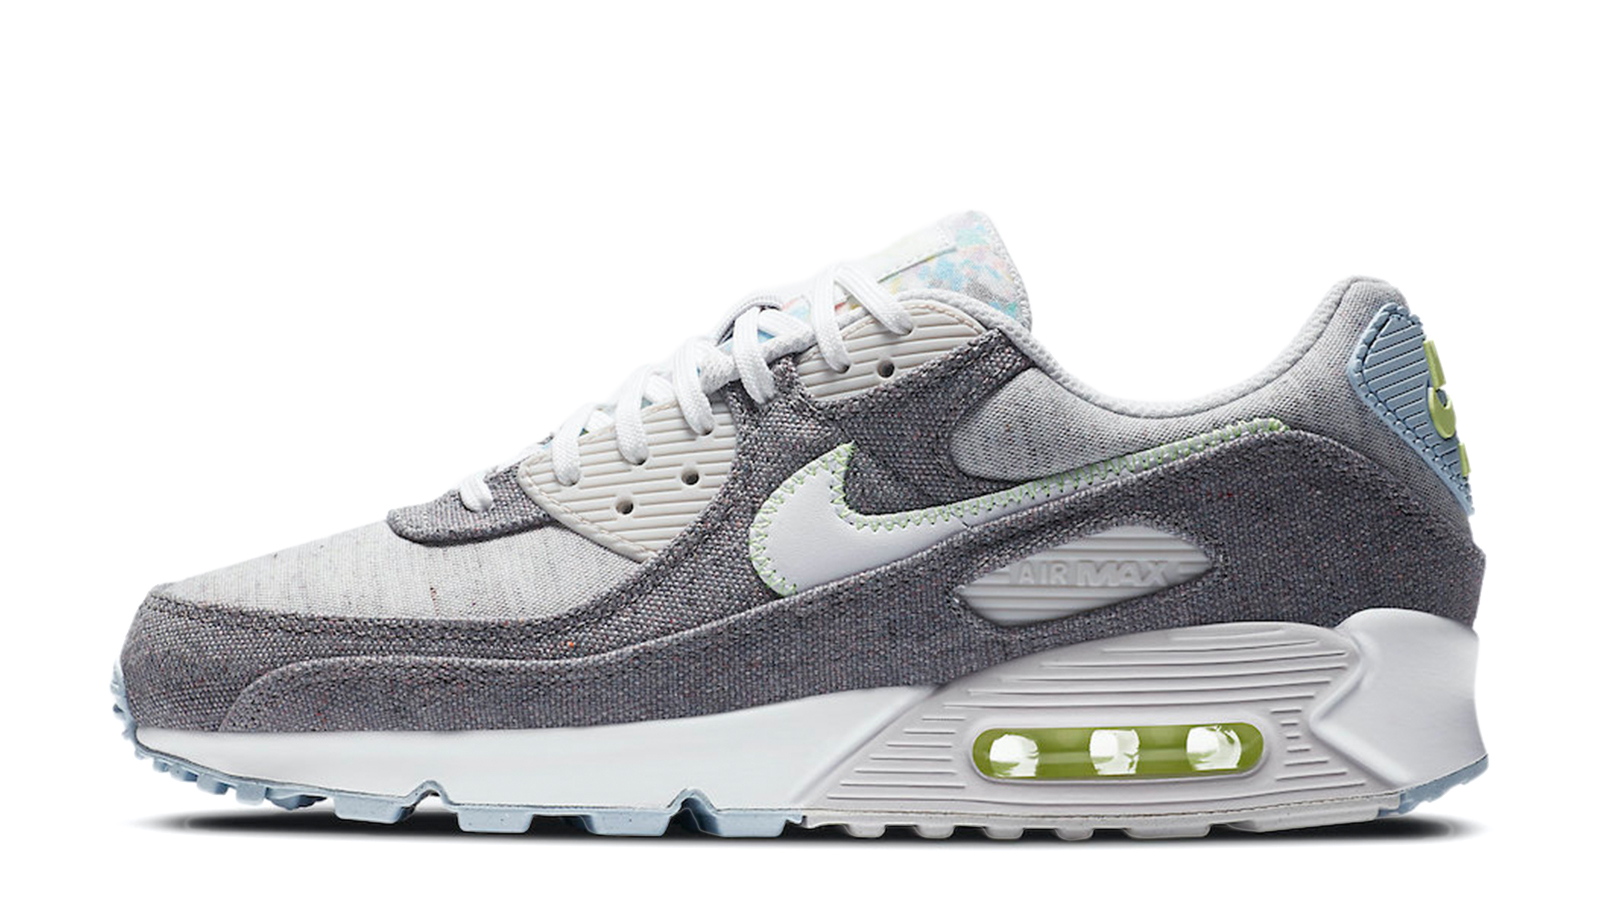 Nike Air Max 90 NRG Recycled Canvas CK6467-001